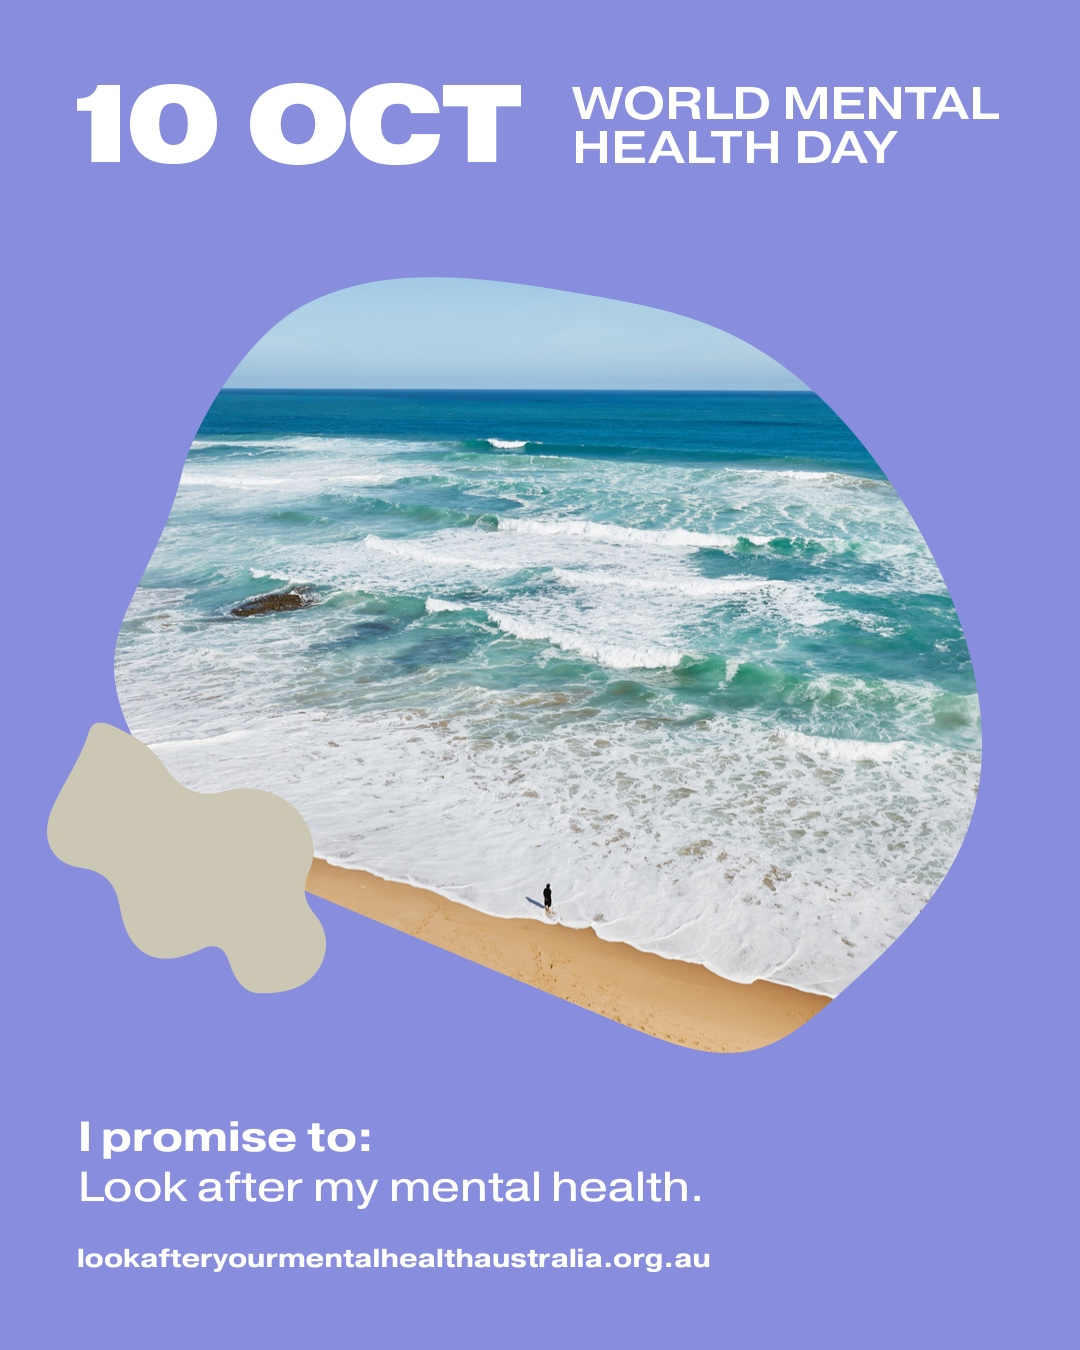 I promise to: Look after my mental health.